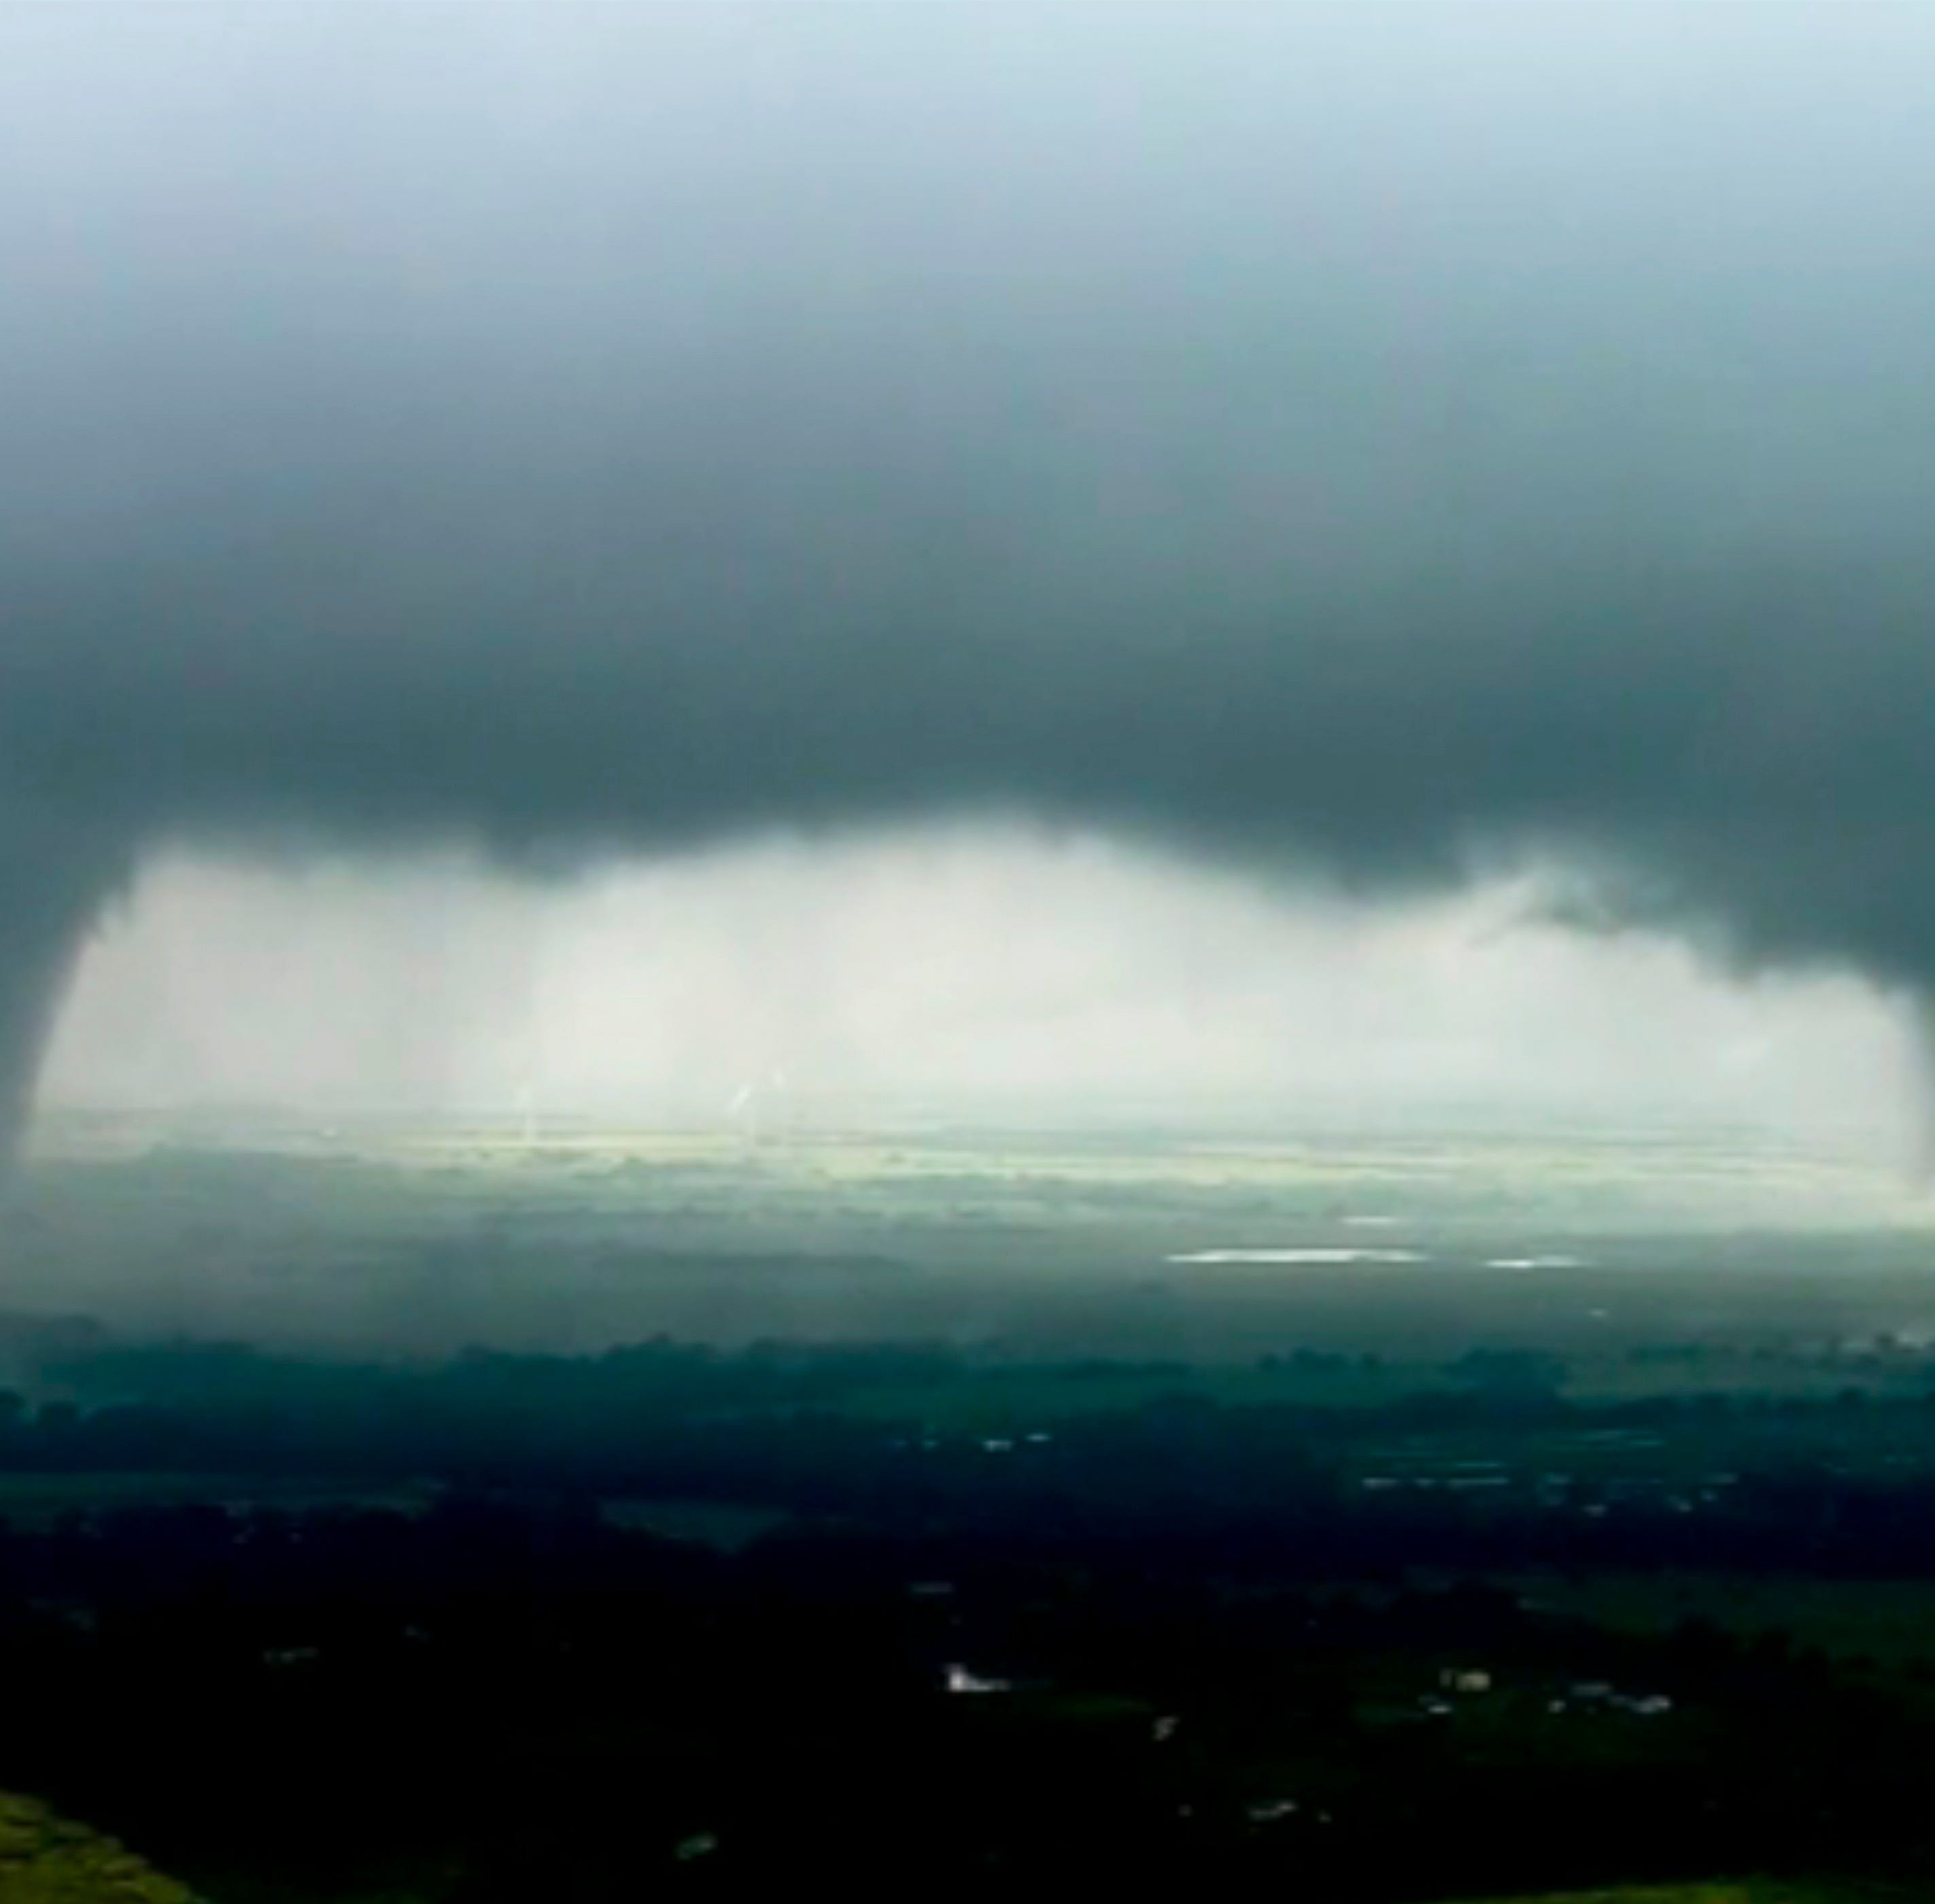 Tornadoes, flooding in Oklahoma weather forecast as storm system moves through midwest